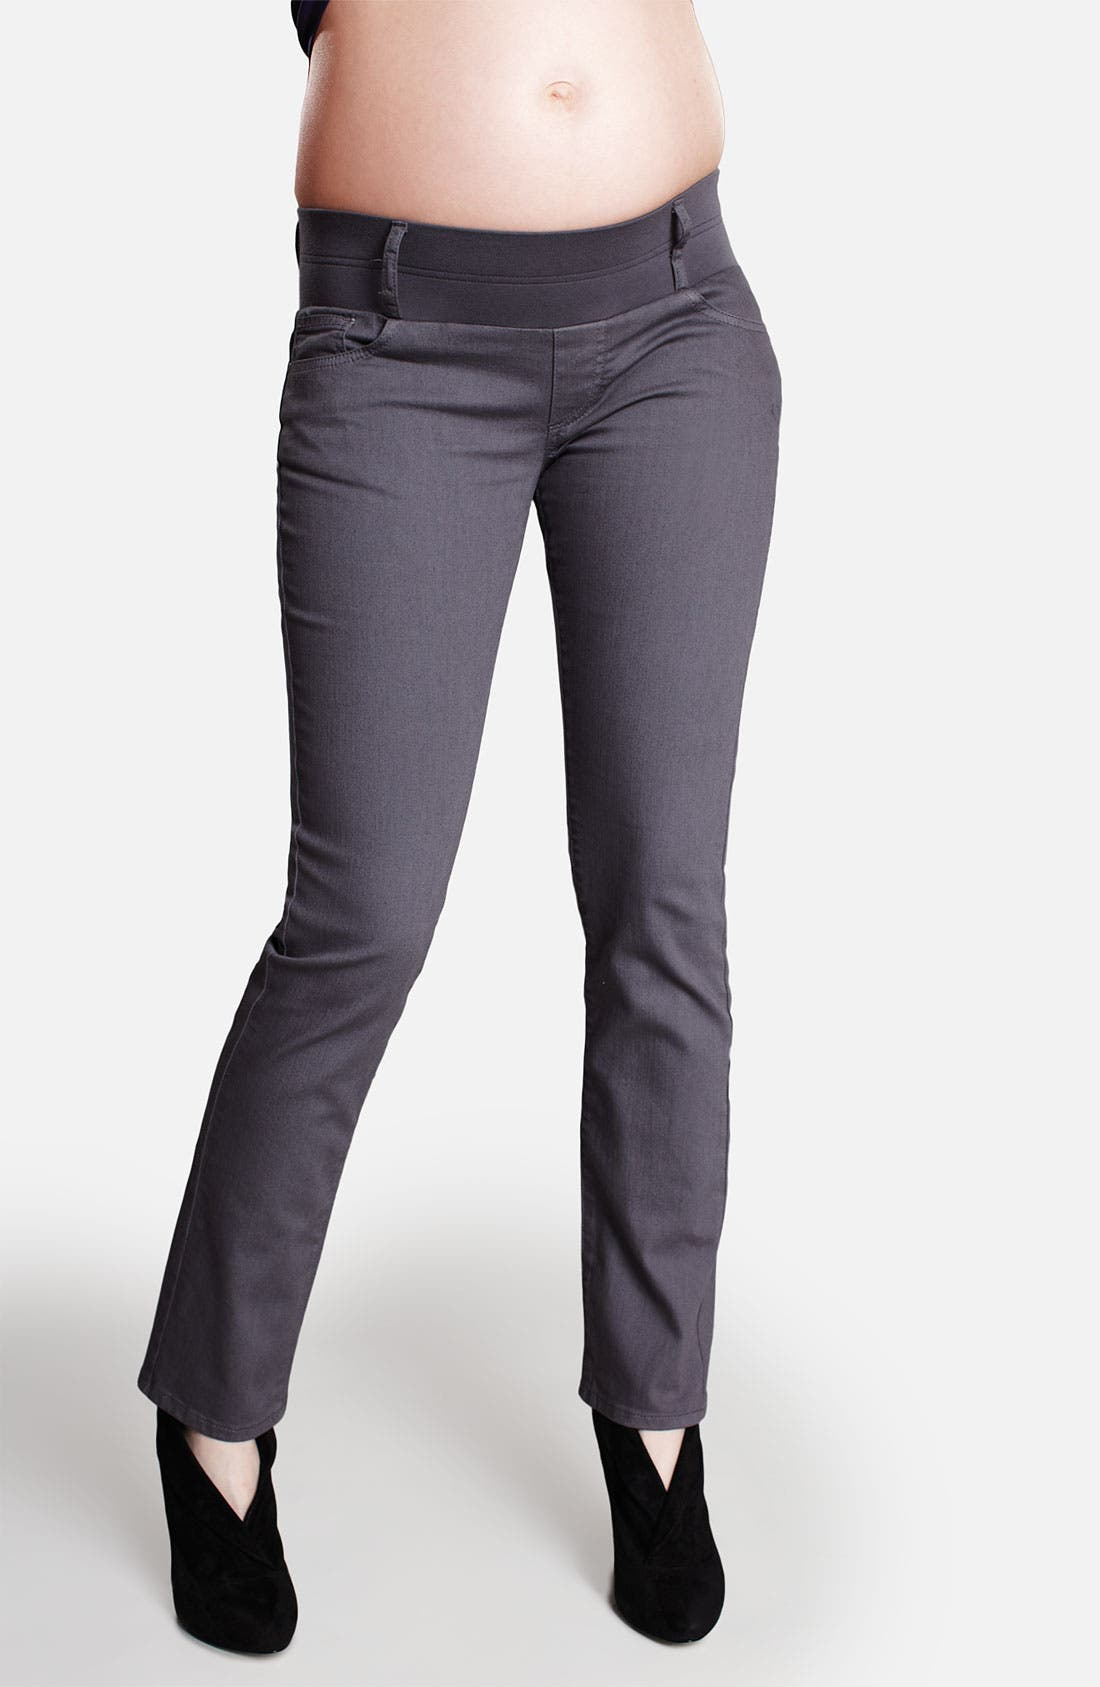 Main Image - Maternal America Maternity Skinny Ankle Stretch Jeans